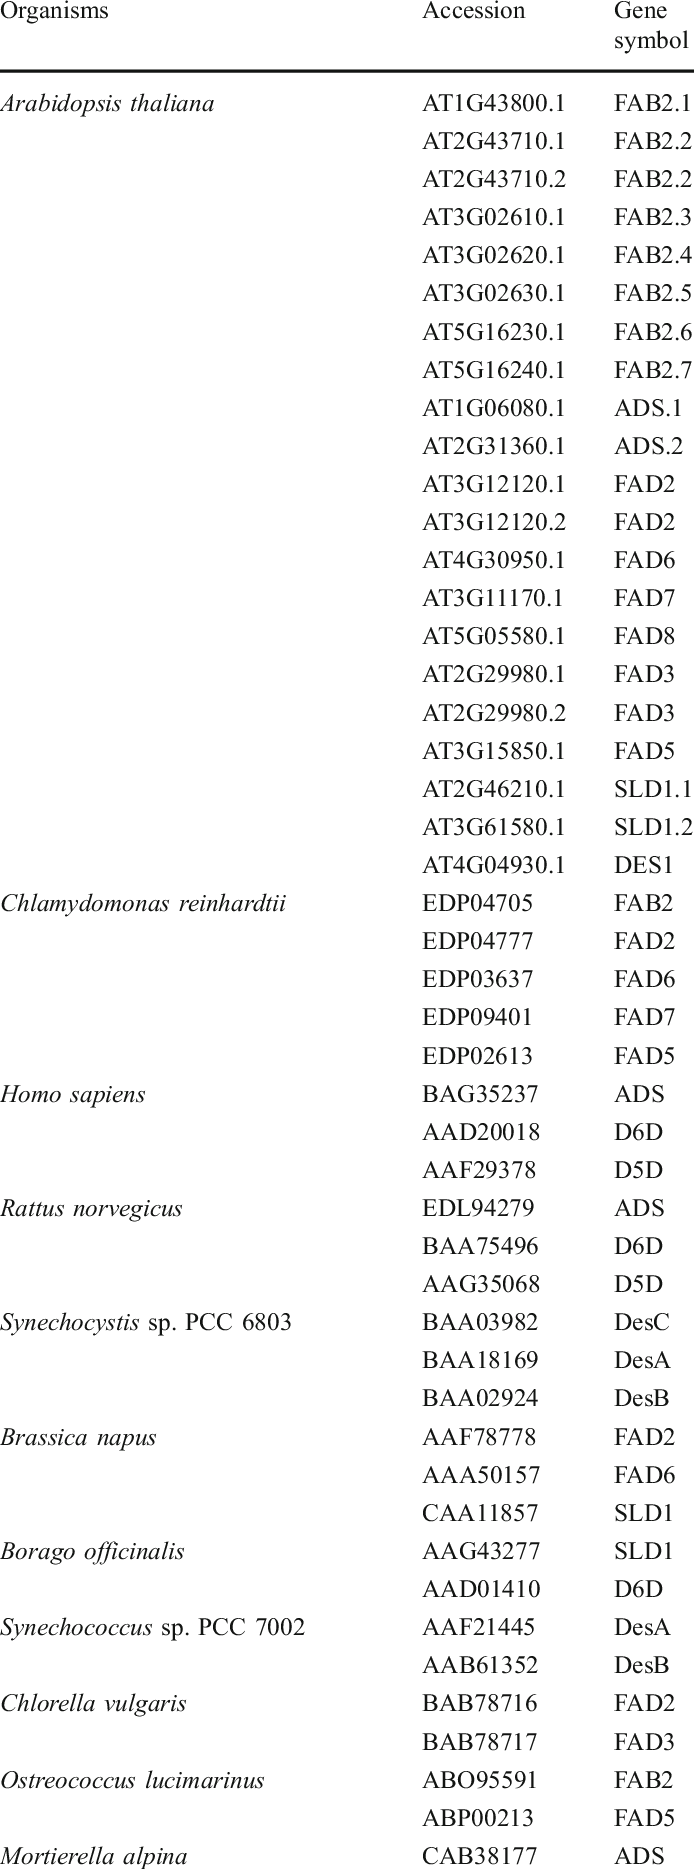 List of organisms and desaturase protein sequences